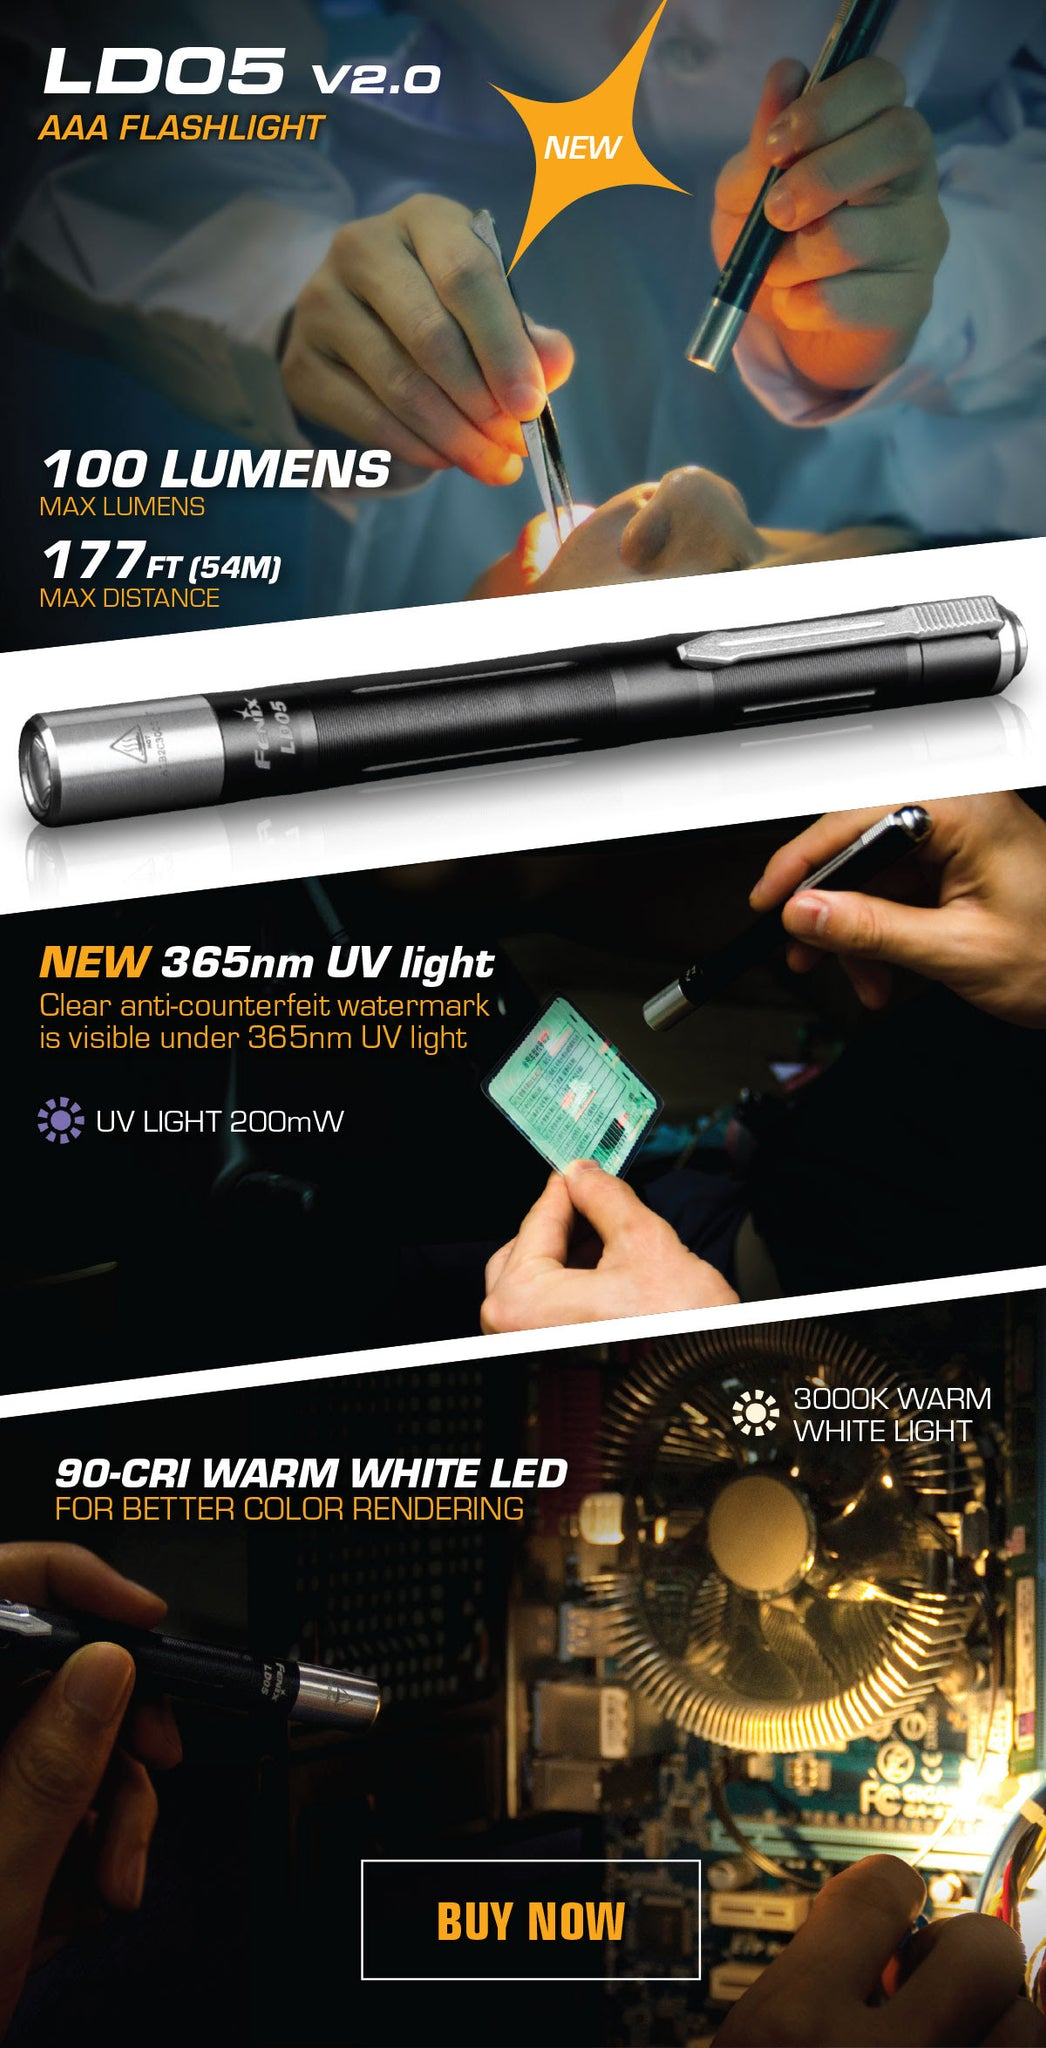 Fenix LD05 V2.0 LED pen light, 100 Lumens Compact Pen size LED Torch, Warm White Light with UV Light